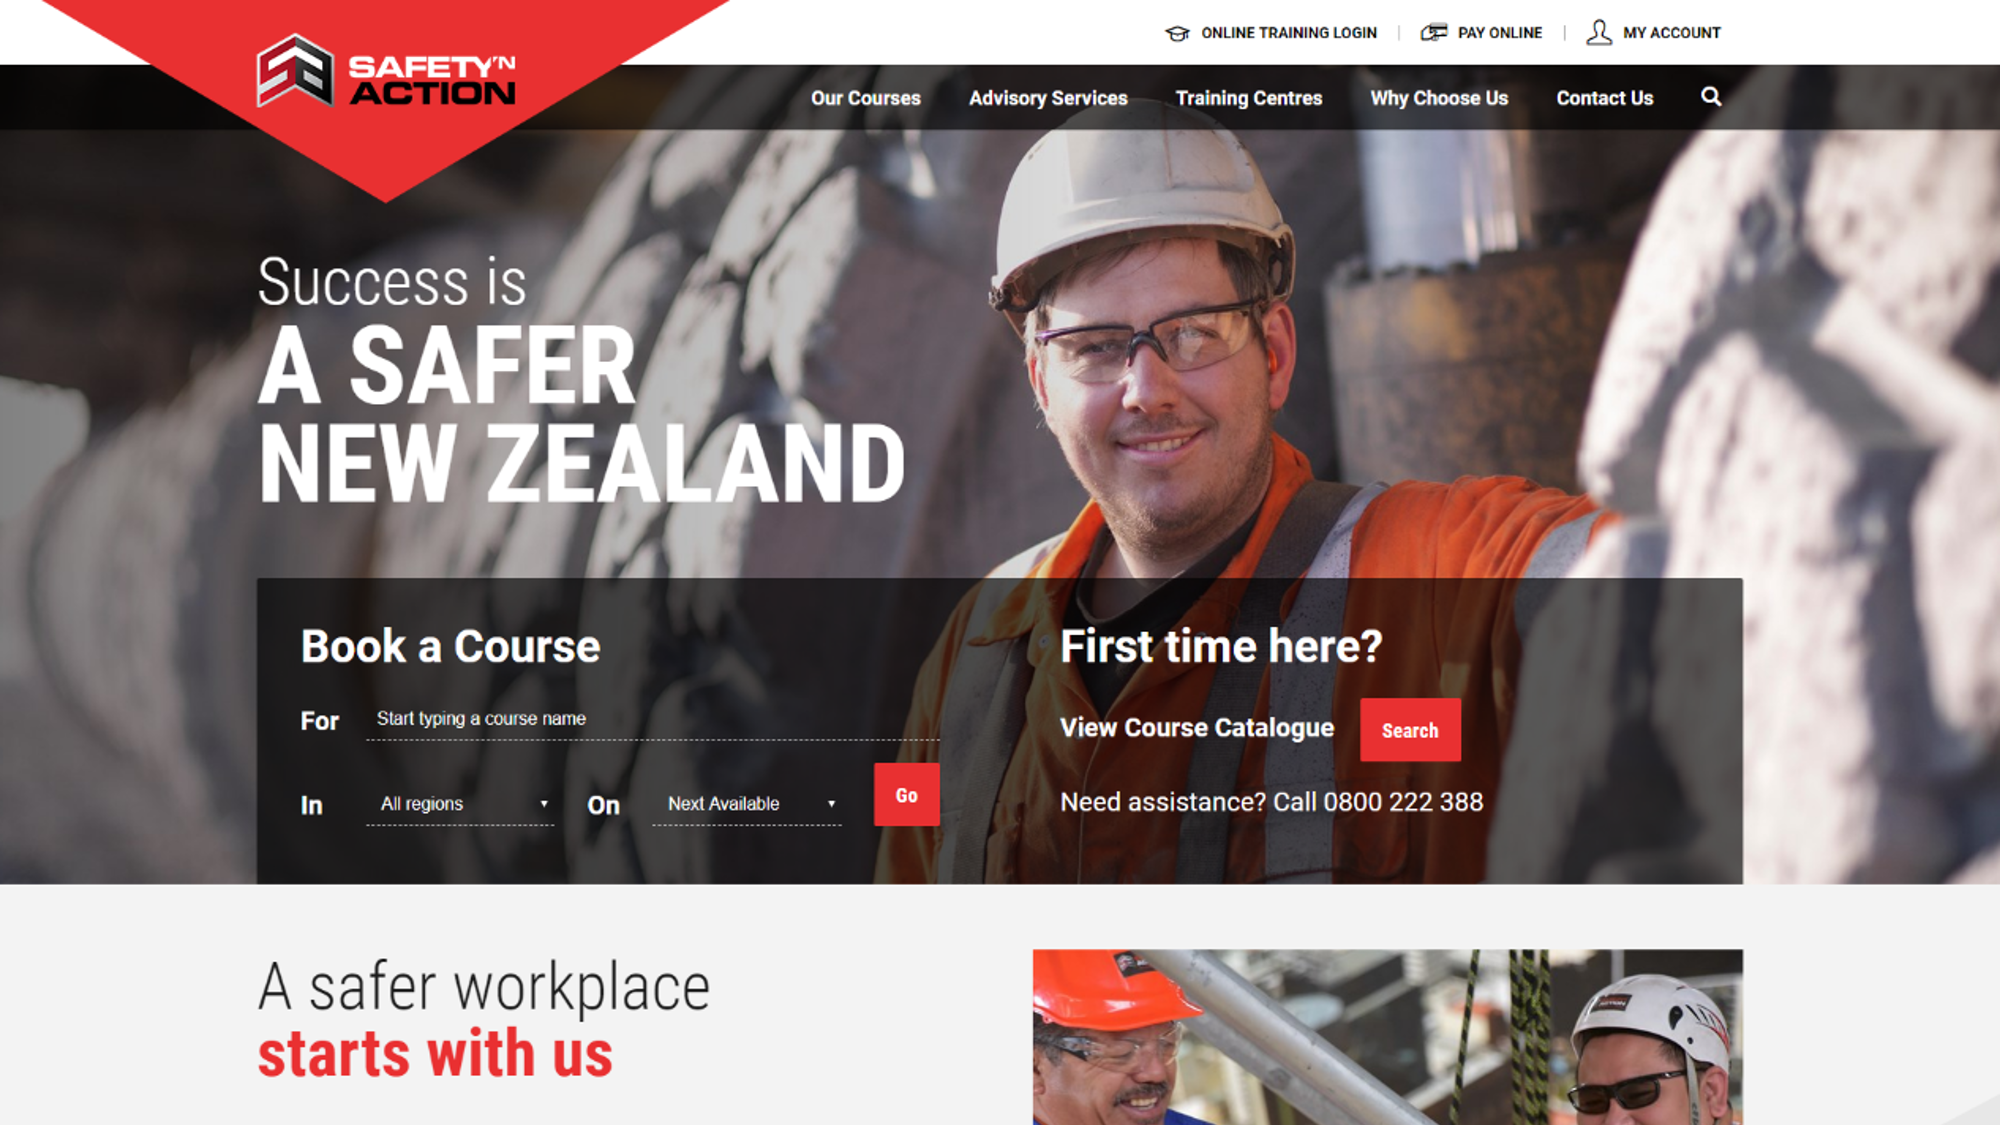 Safety 'N Action's training company website